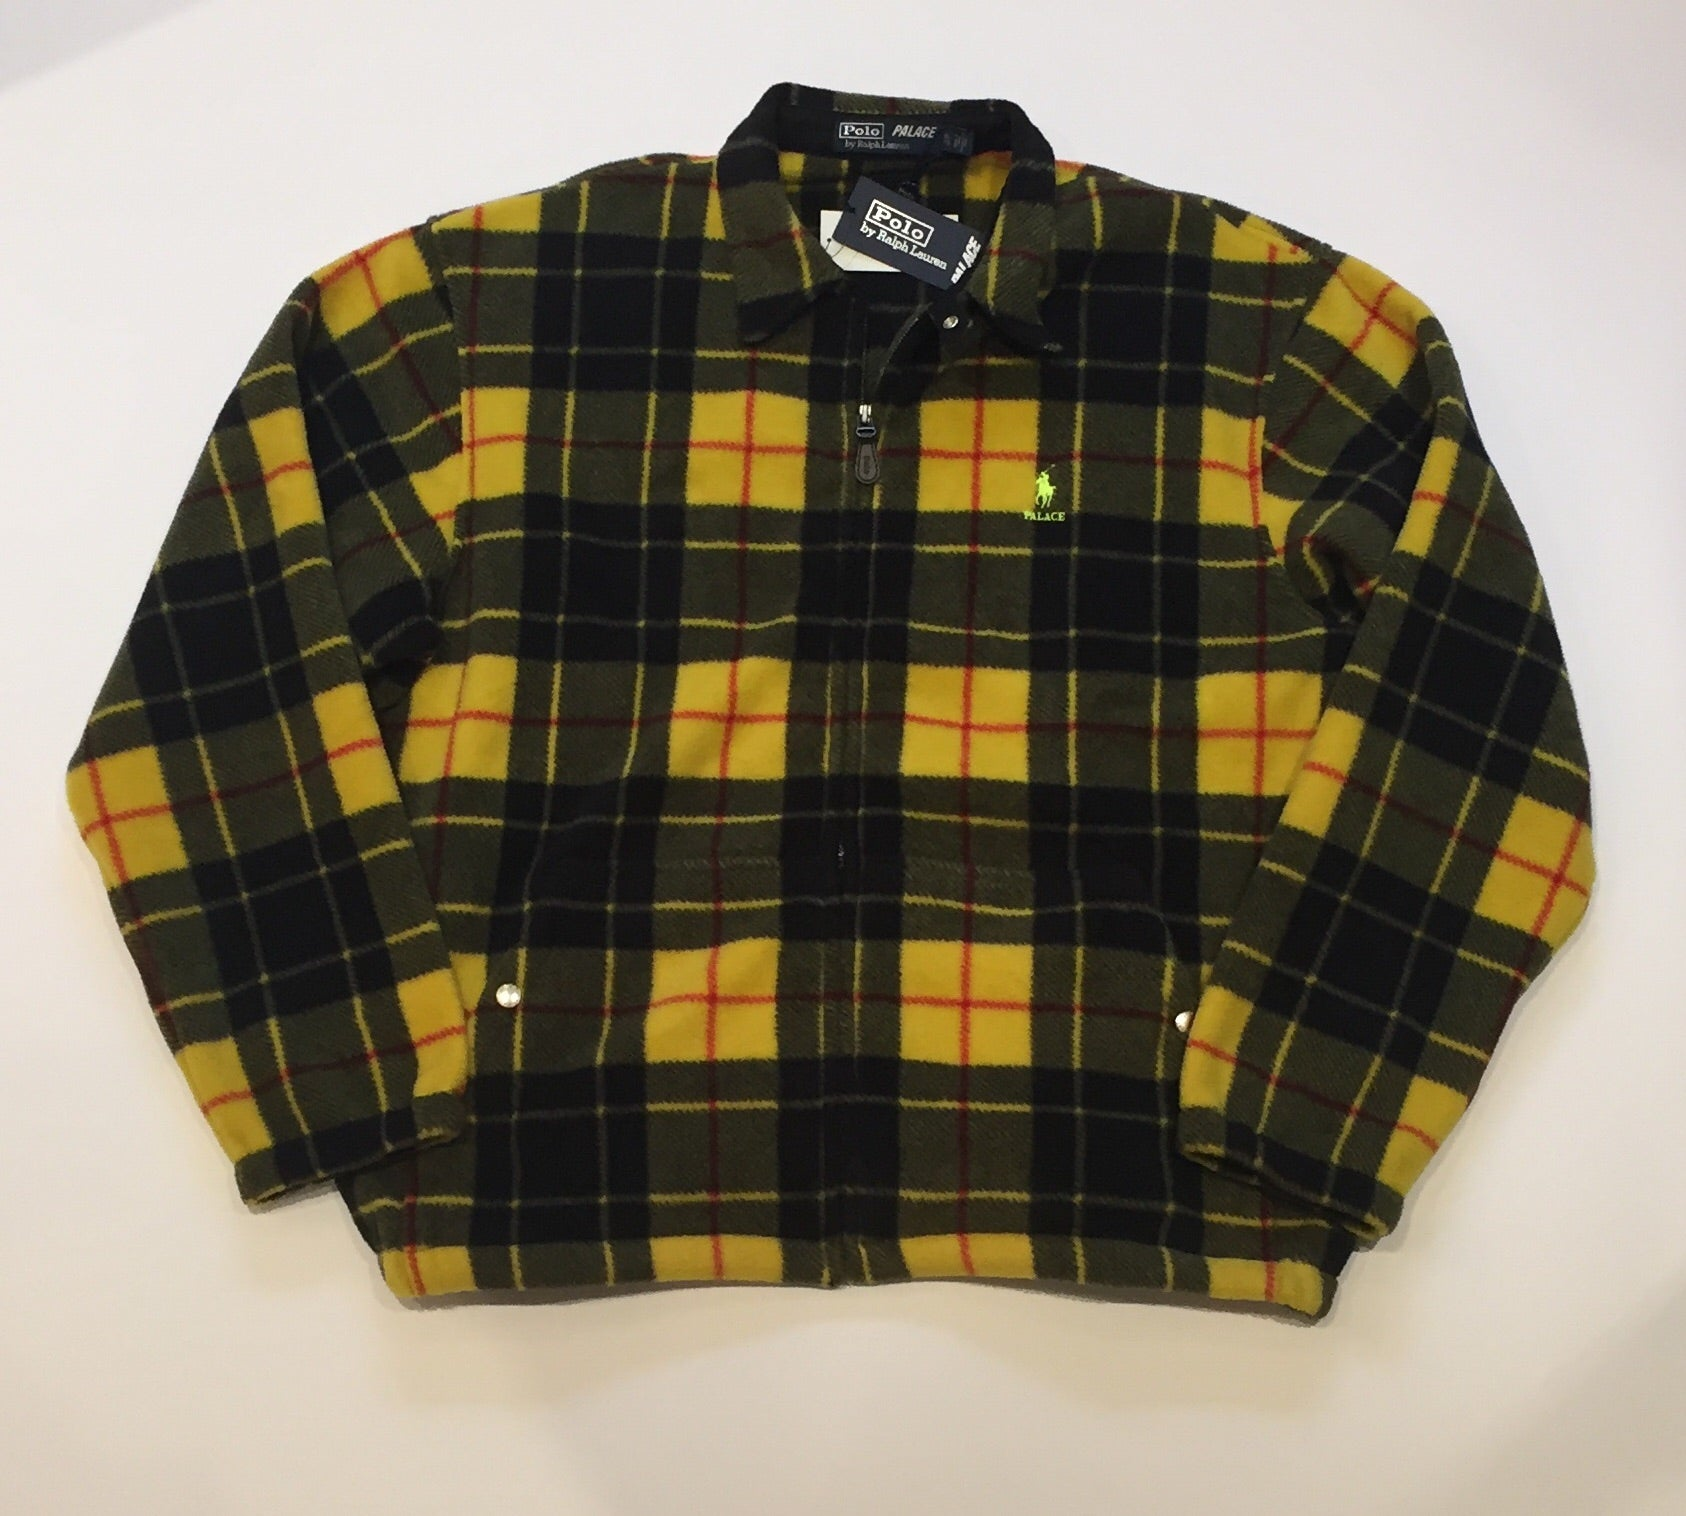 Palace x Ralph Lauren Polar Fleece Harrington